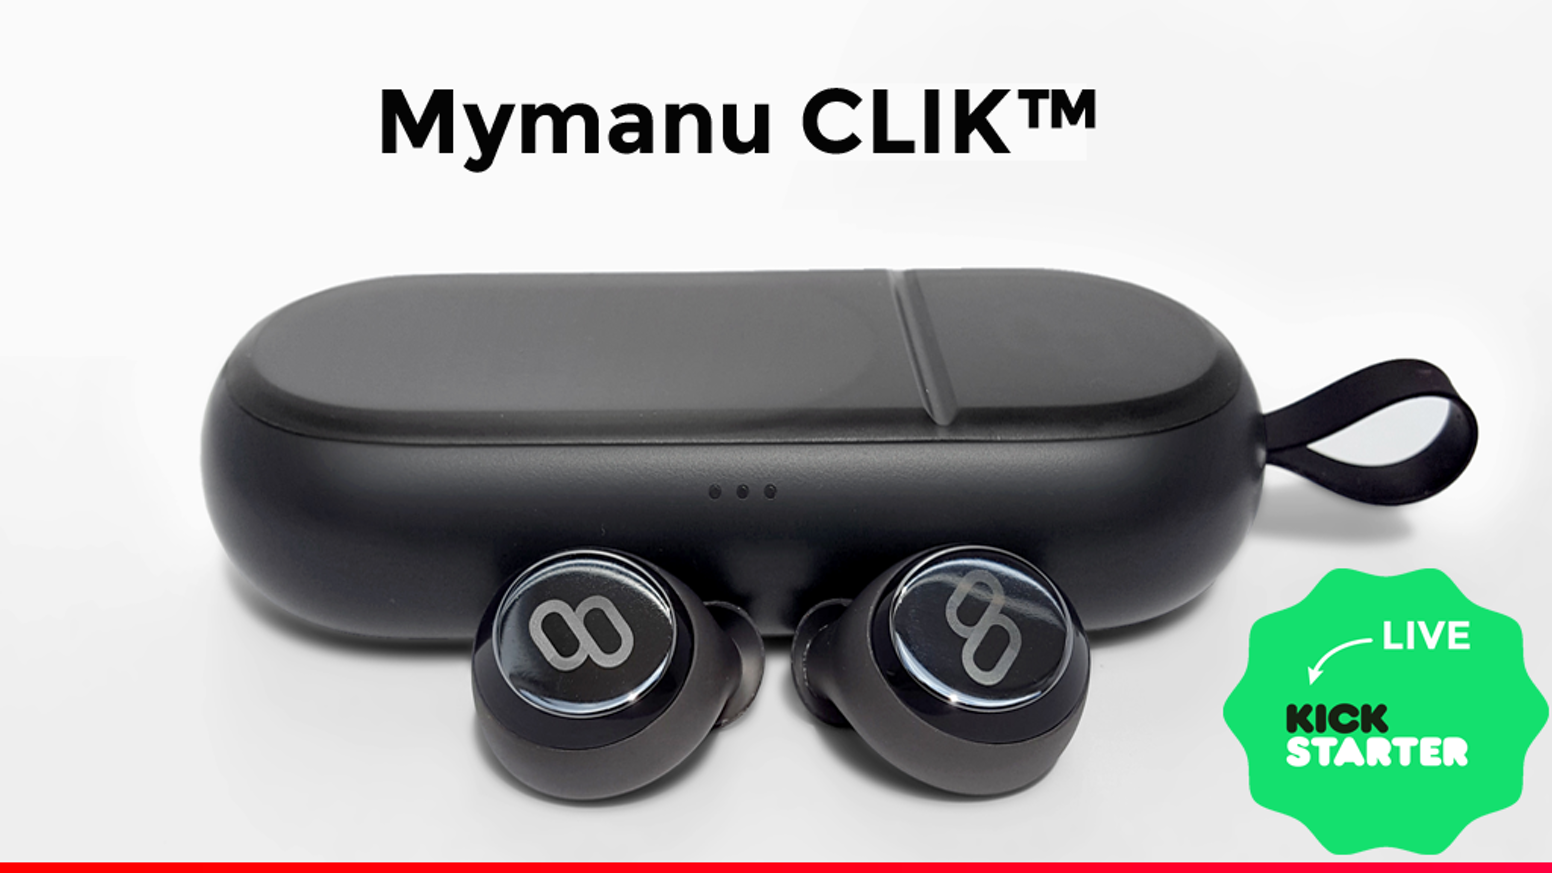 The world's first proven truly wireless earbuds that translates your voice in real-time with advanced audio quality.